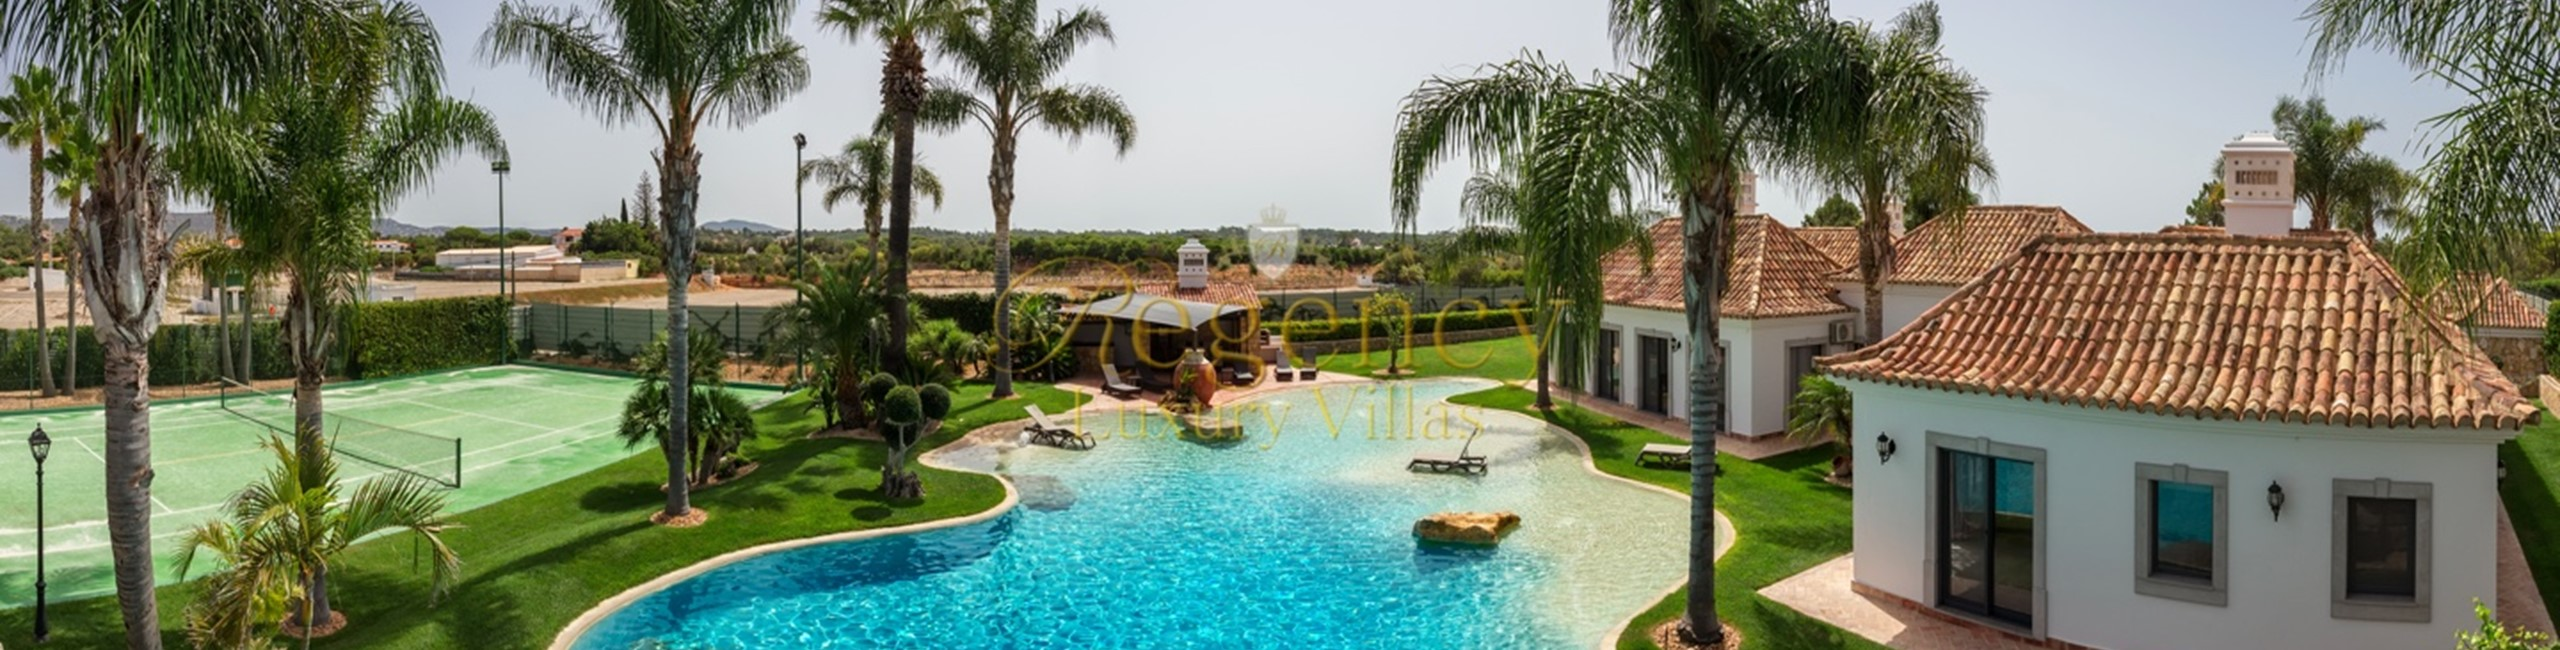 Private 5 Bedroom Property To Rent In The Quinta Do Lago Resort